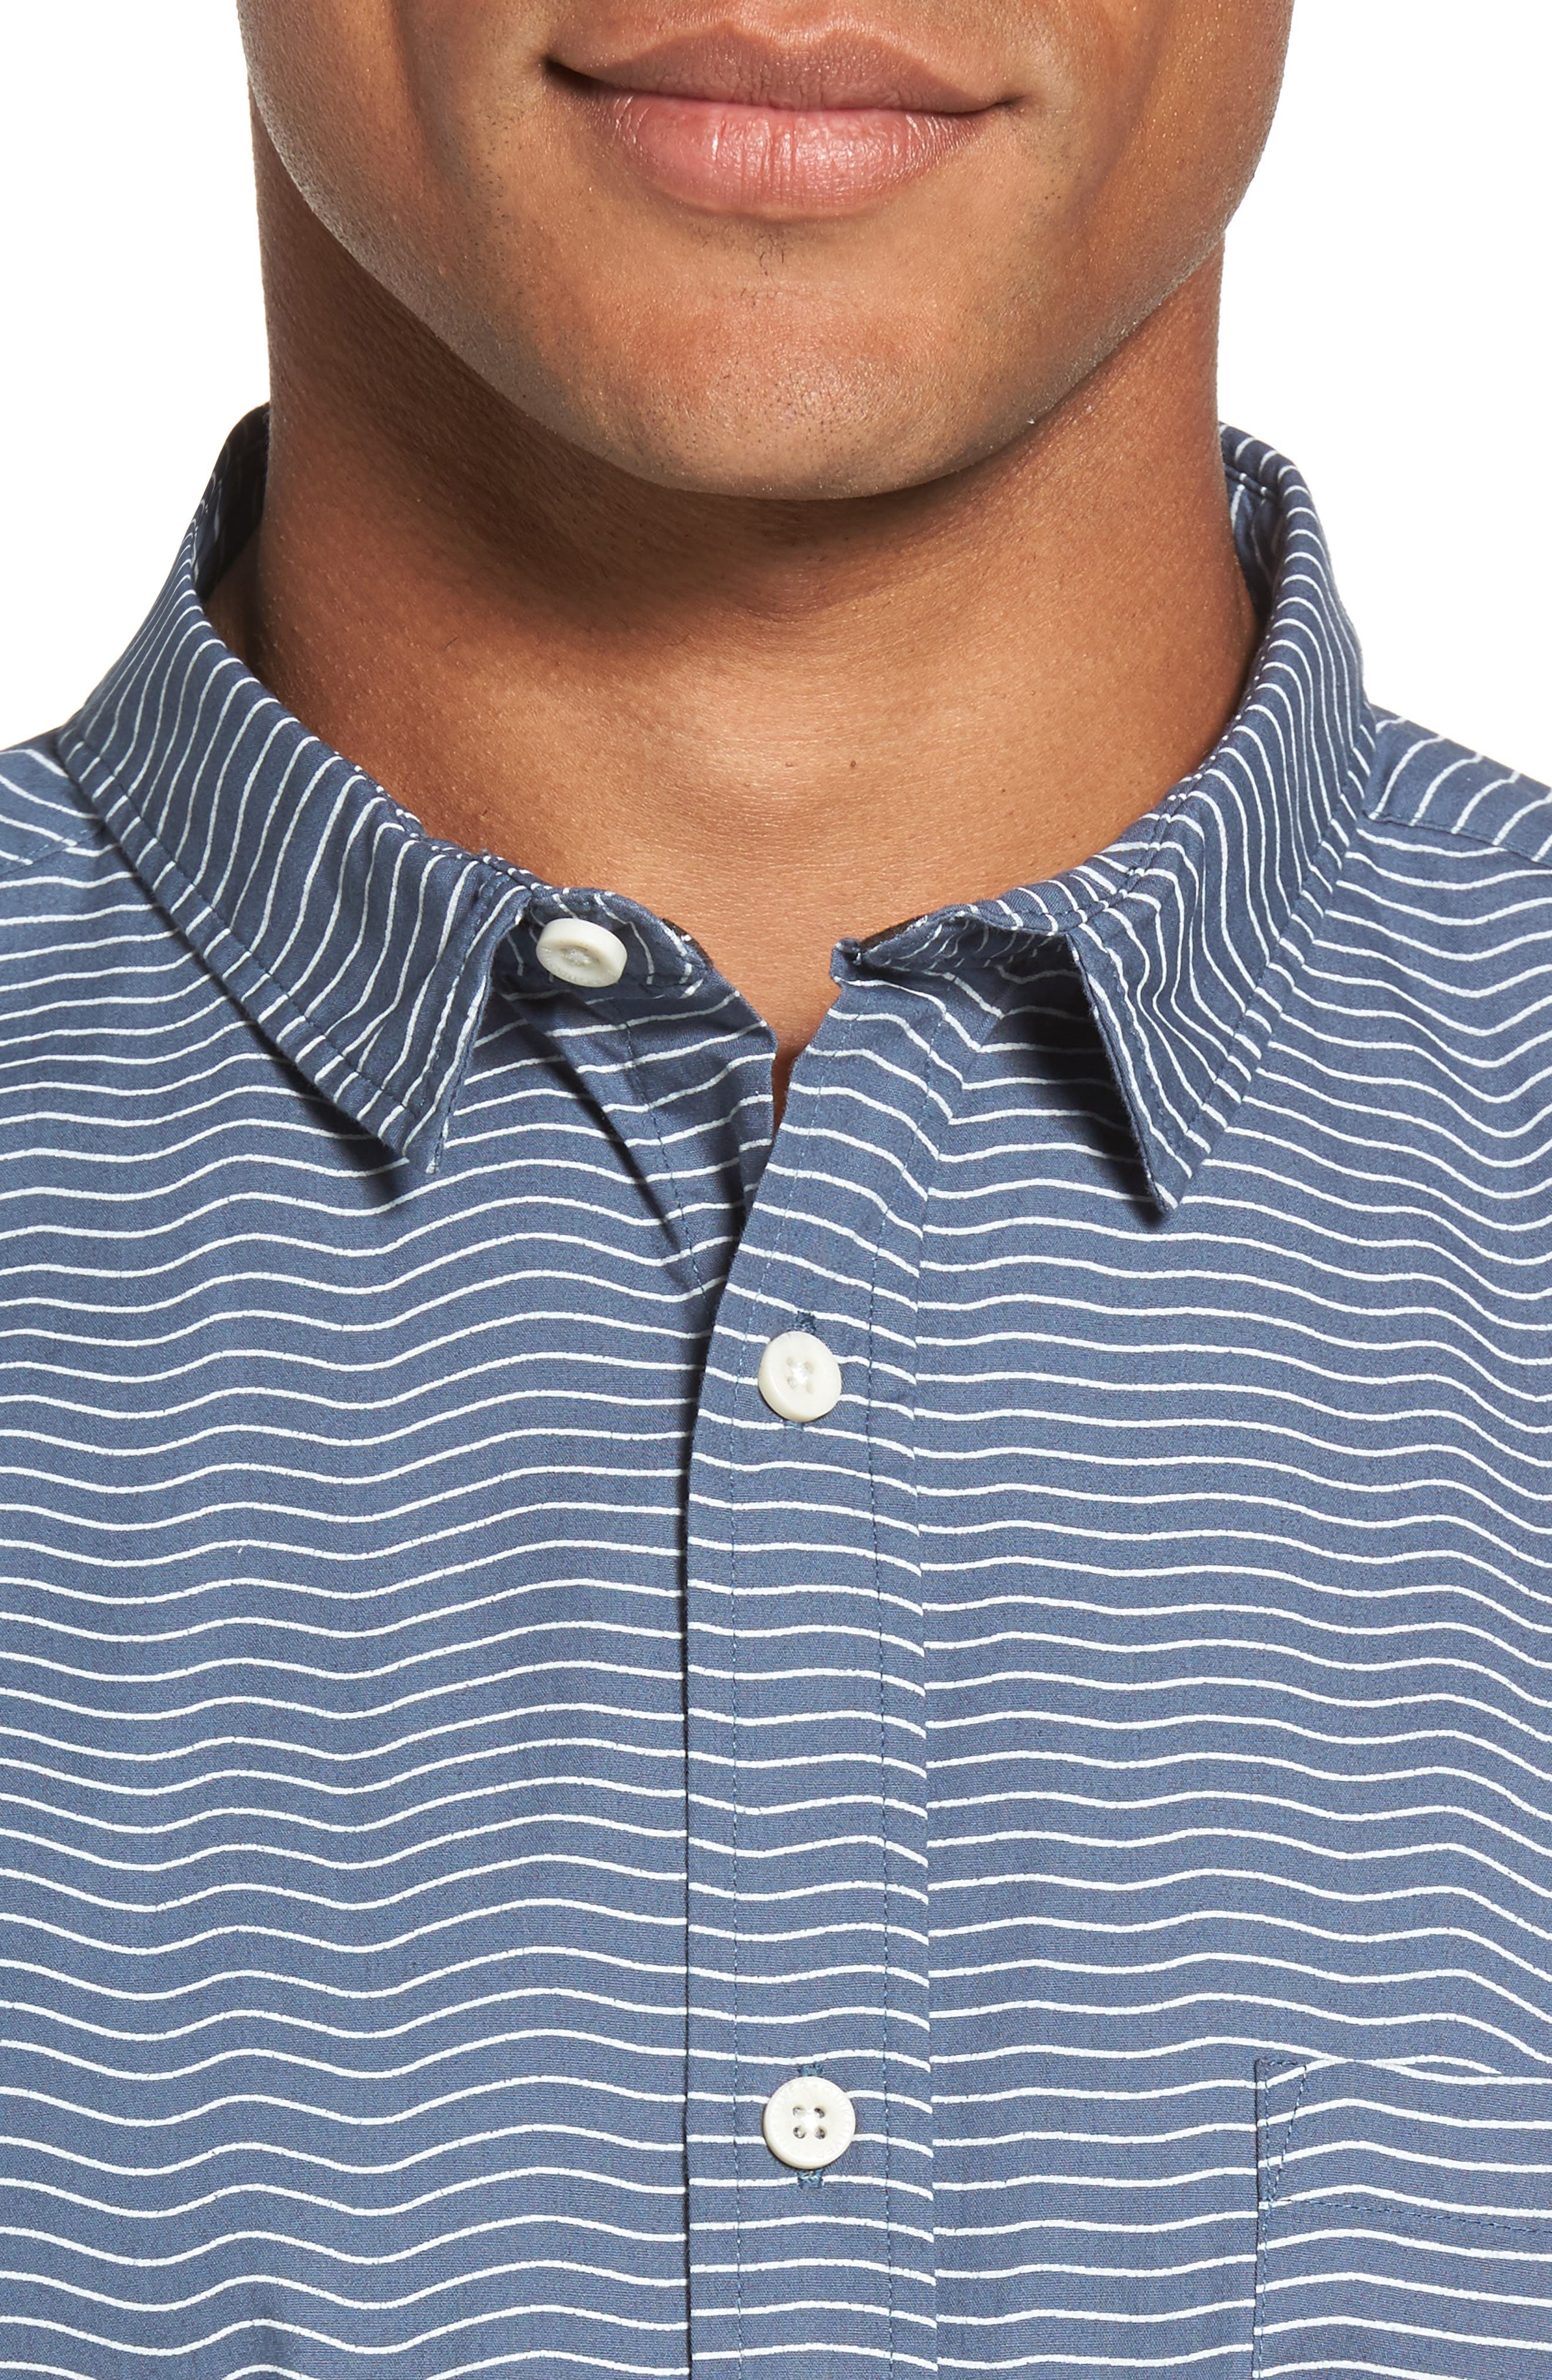 Heat Wave Stripe Shirt,                             Alternate thumbnail 4, color,                             Blue